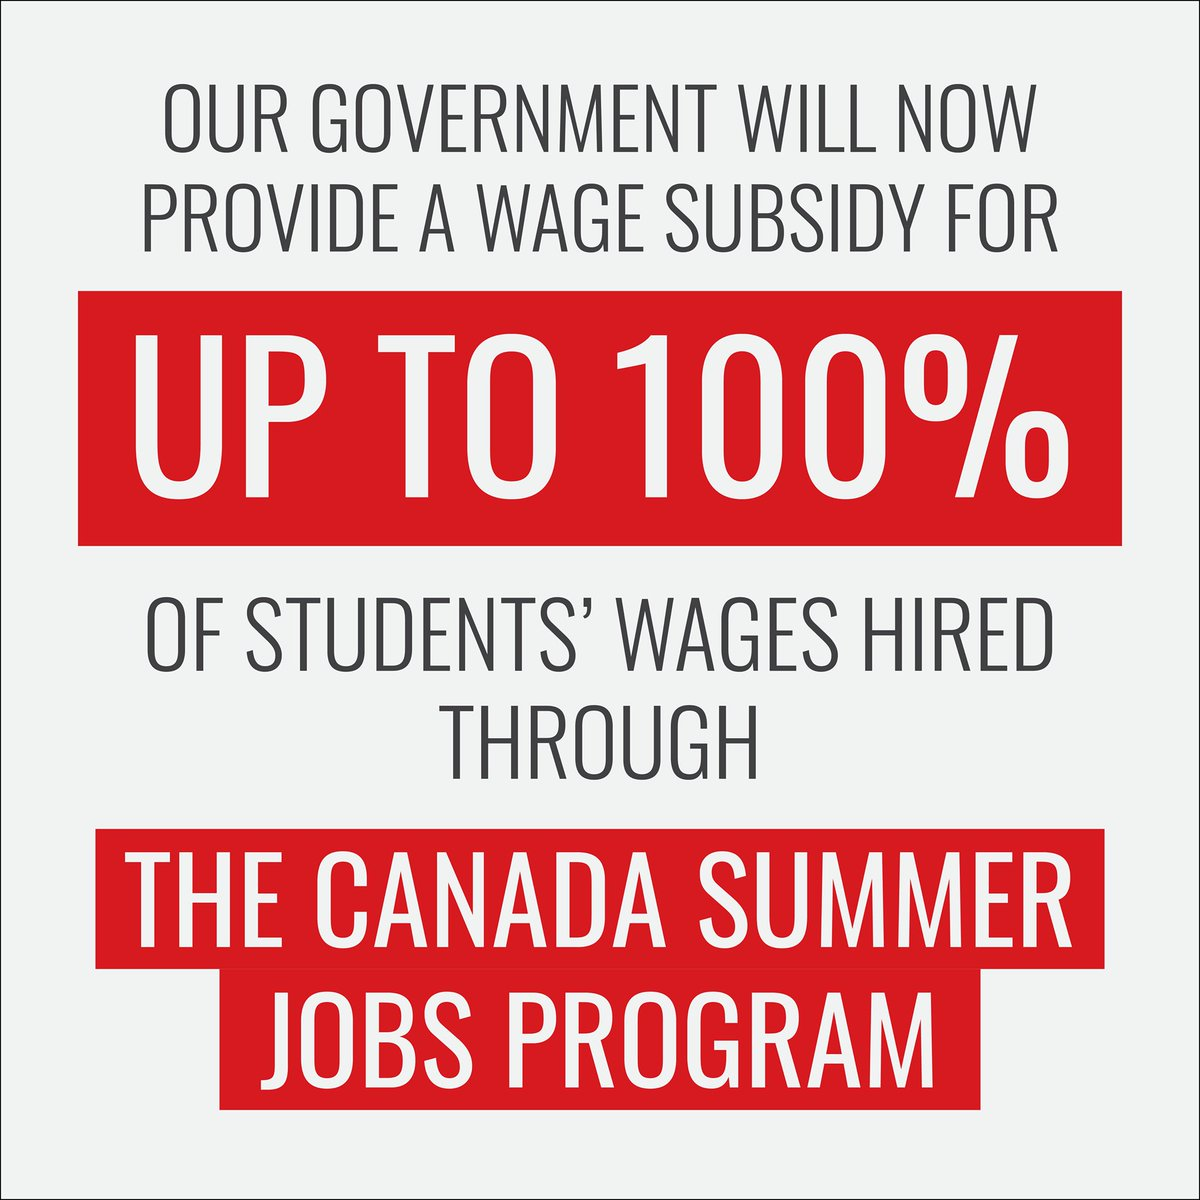 Jean Yves Duclos On Twitter Every Year Thousands Of Young Canadians Between 15 And 30 Years Old Benefit From The Canada Summer Jobs Program To Make Sure The Program Was Fit For The